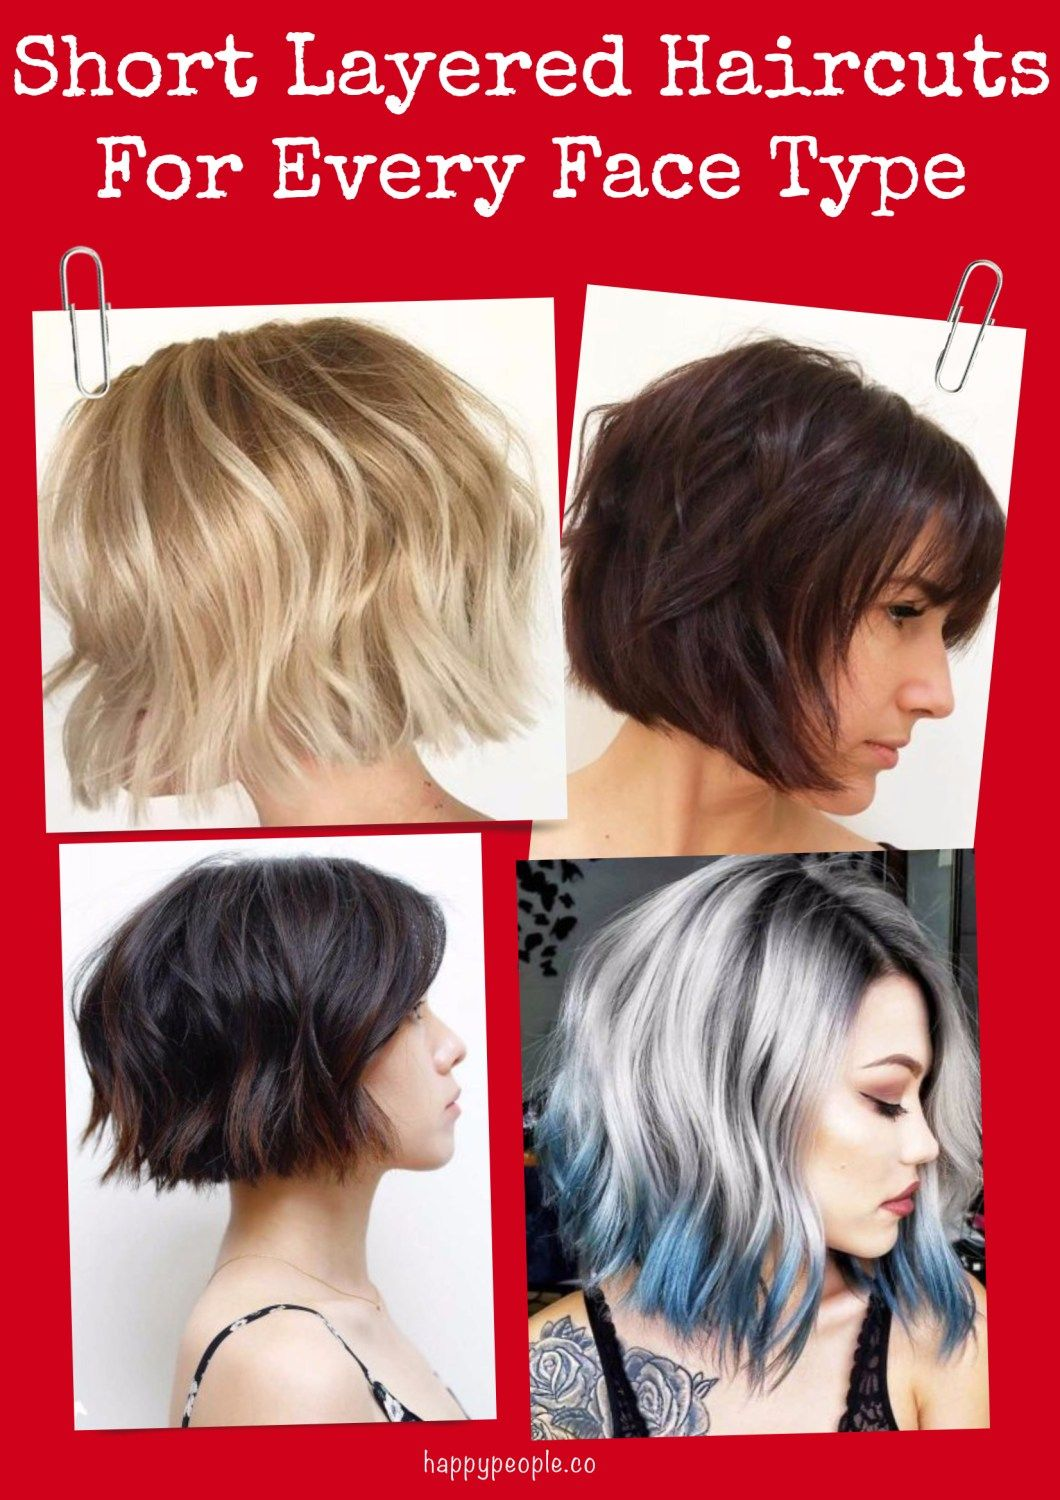 21 Cute Short Layered Haircuts For Every Face Type #shortlayeredhaircuts